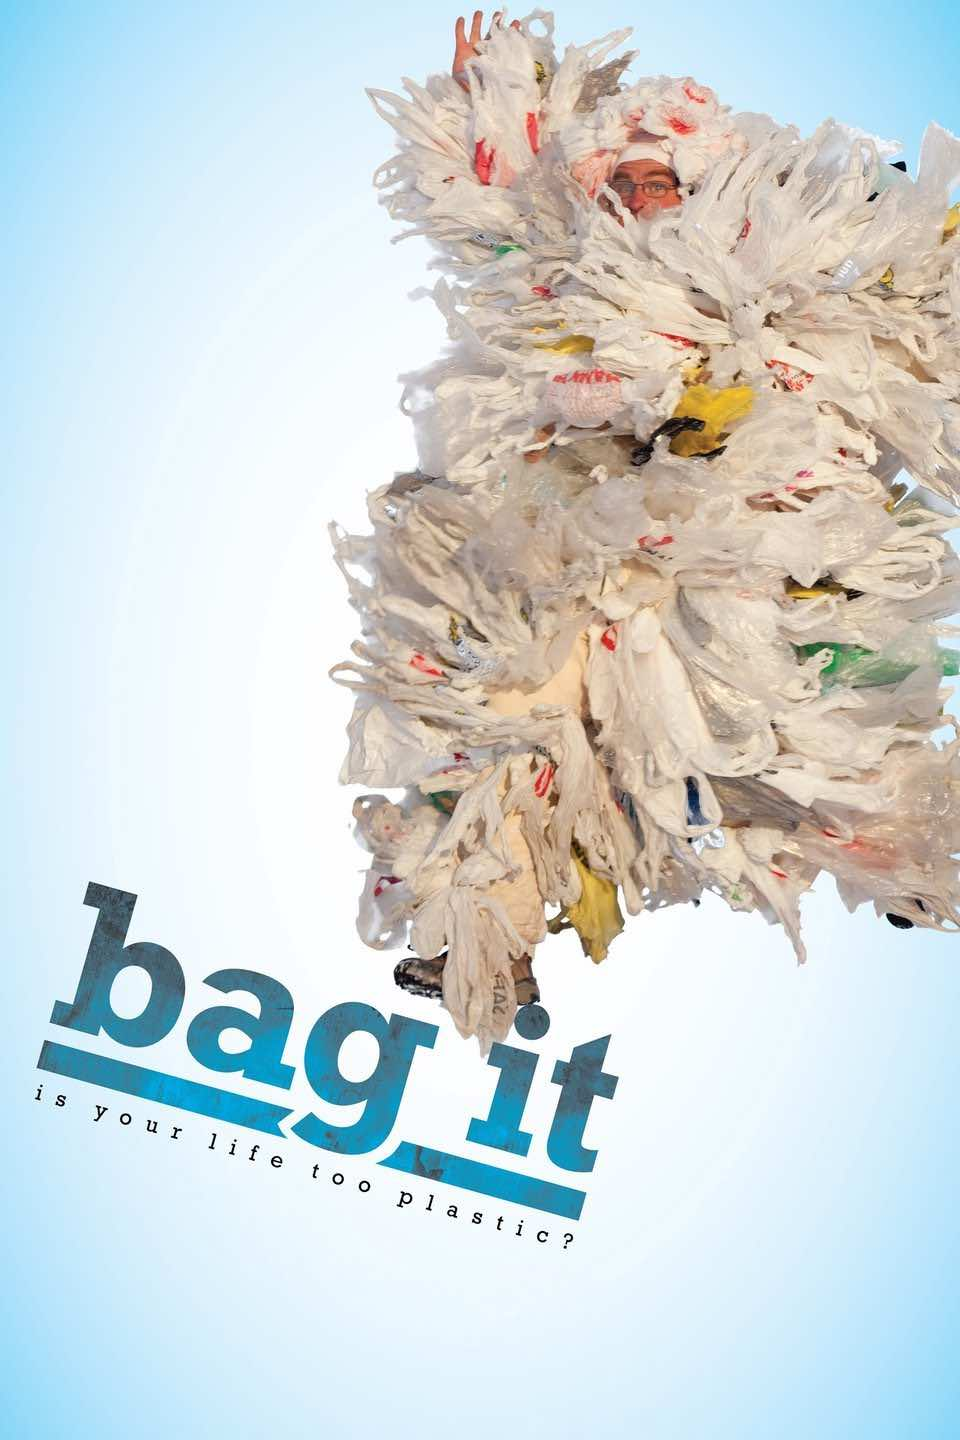 sustainability documentaries Bag It: Is Your Life Too Plastic? by Suzan Beraza